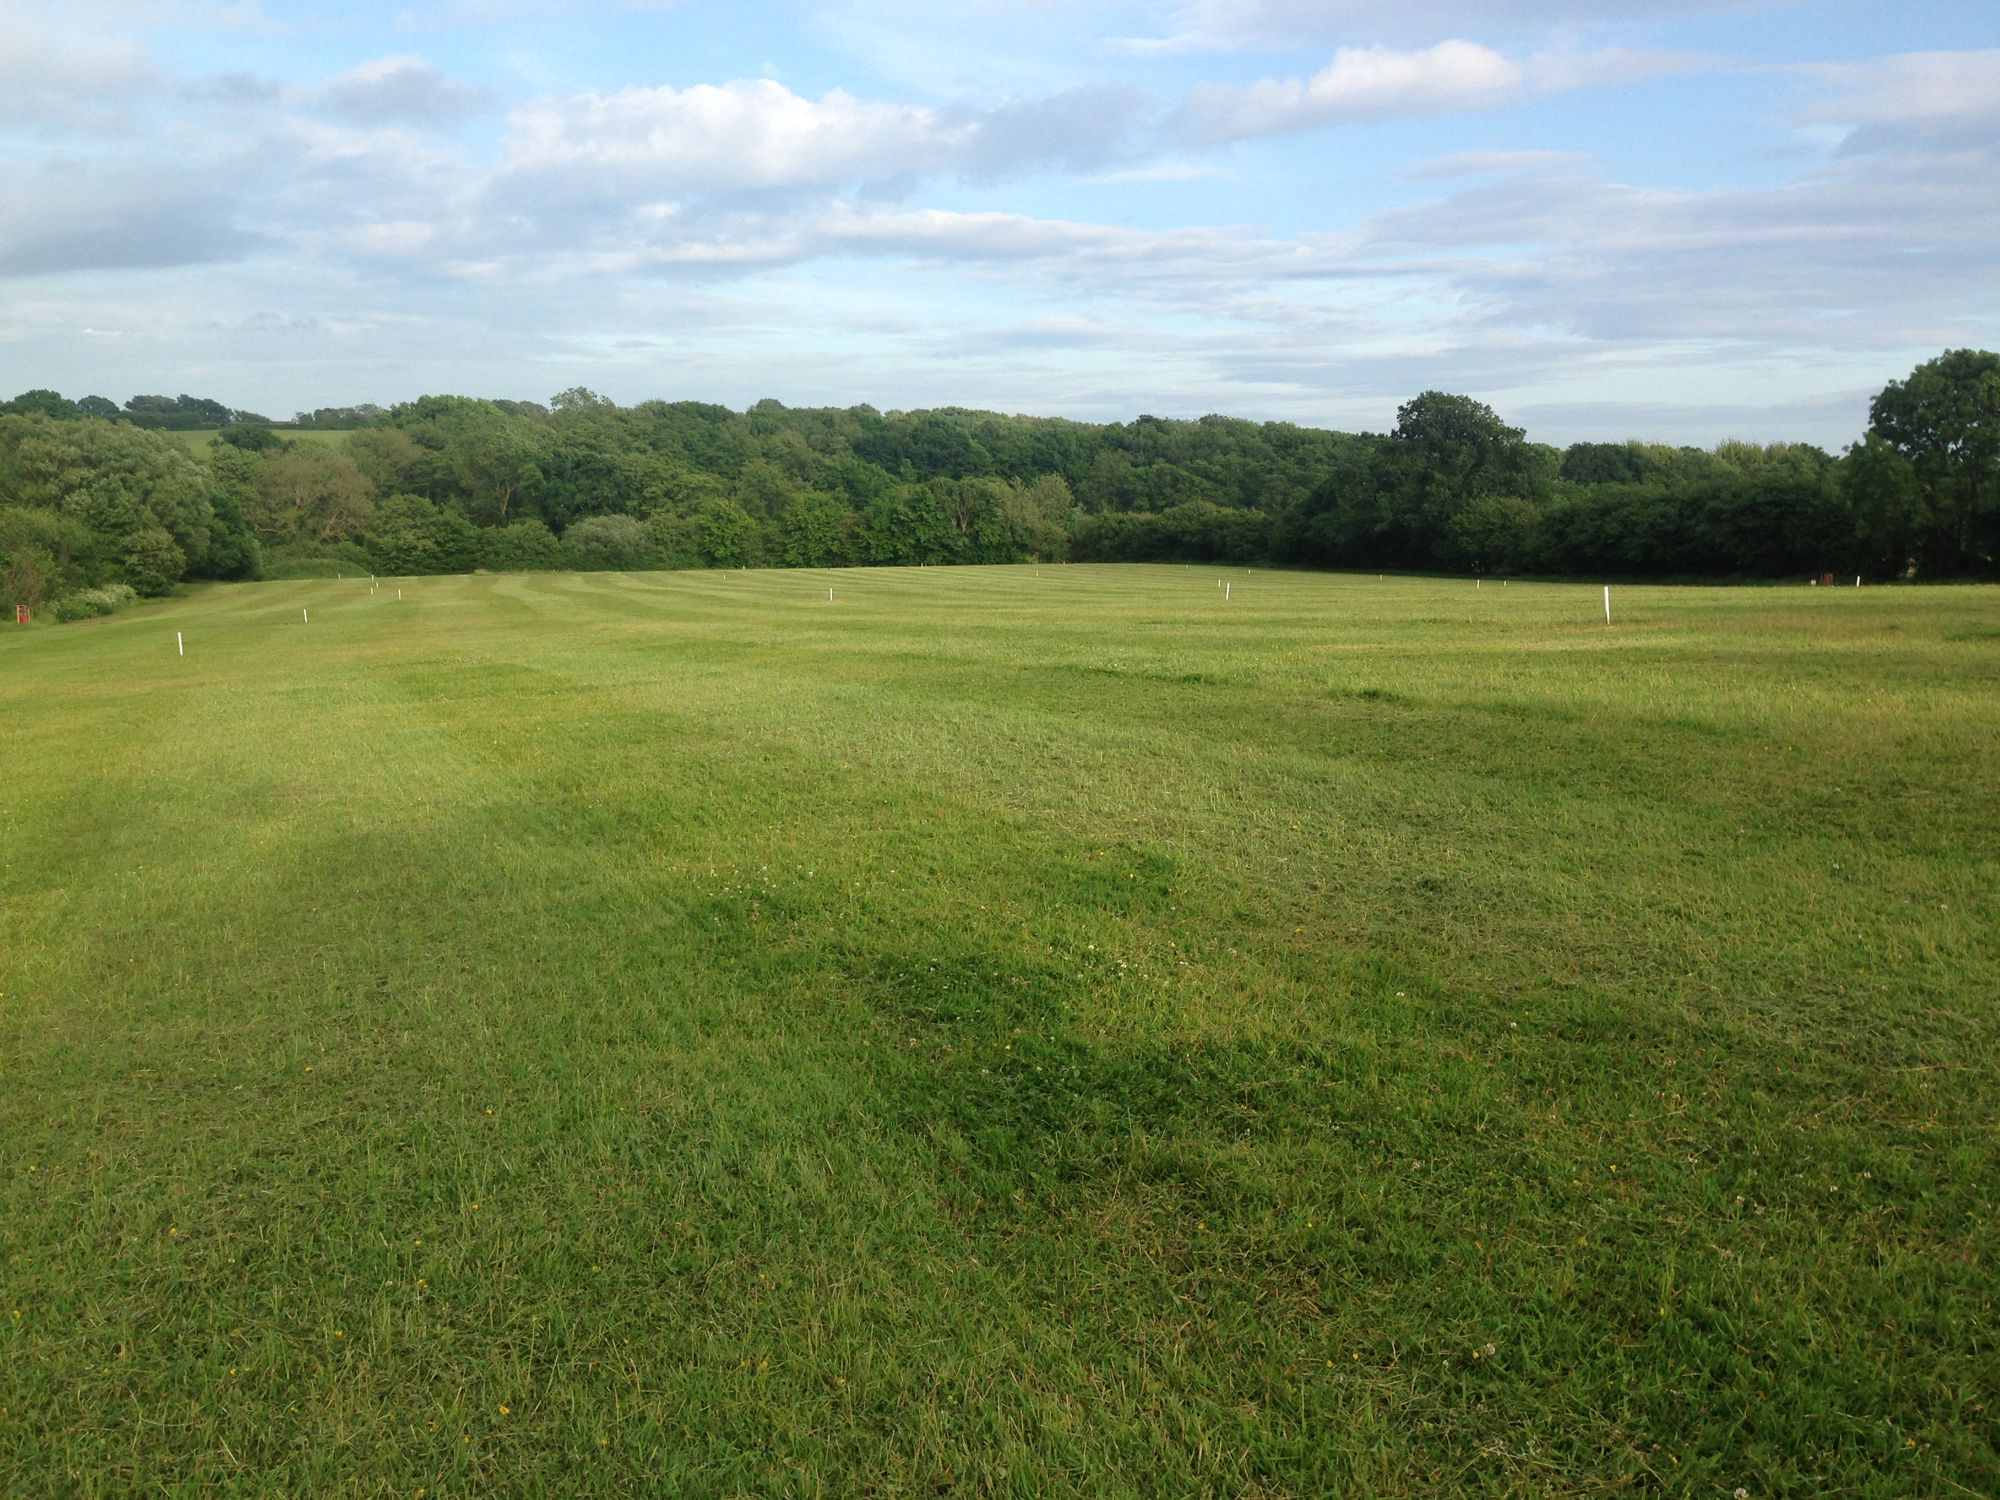 Campsites in Hailsham – I Love This Campsite